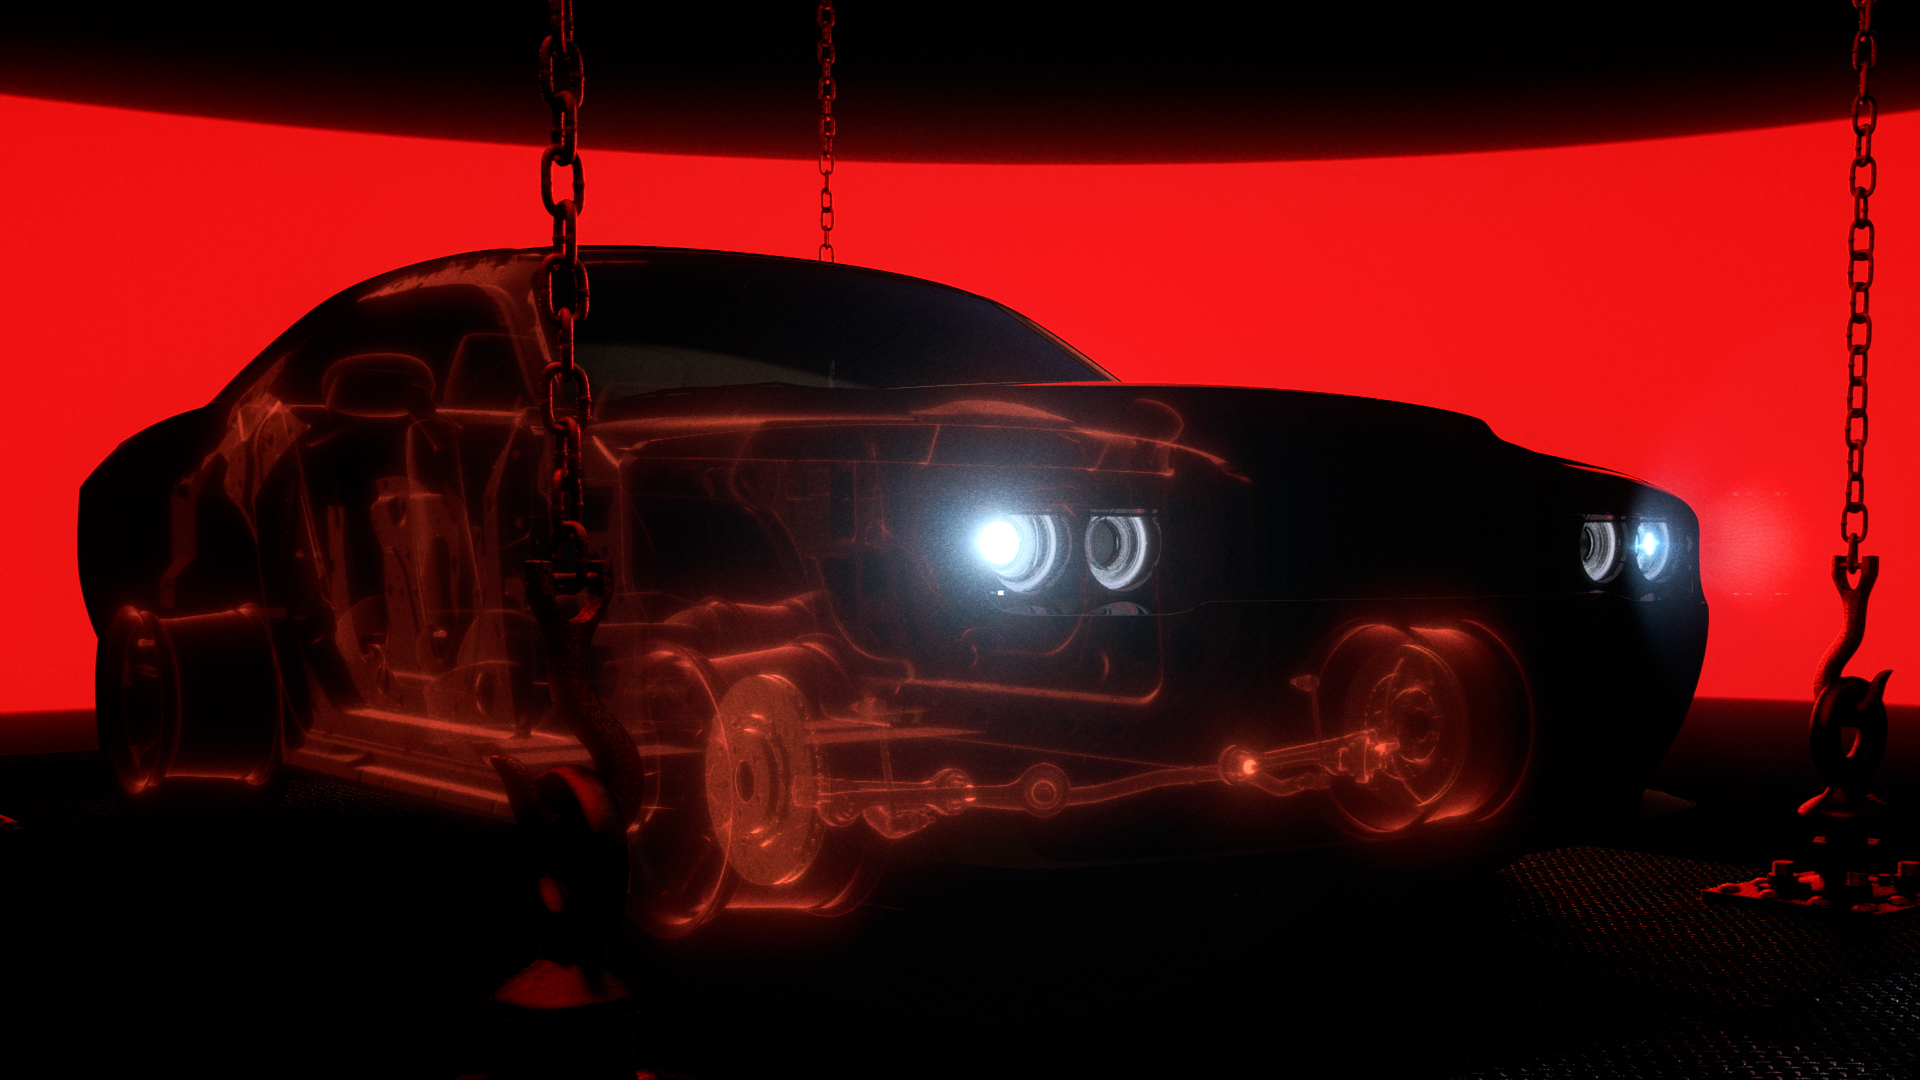 A New Chapter Is About To Begin In The Dodge Performance Legacy Automaker Resurrecting Demon Originally 2 Door Fastback Hardtop Version Of